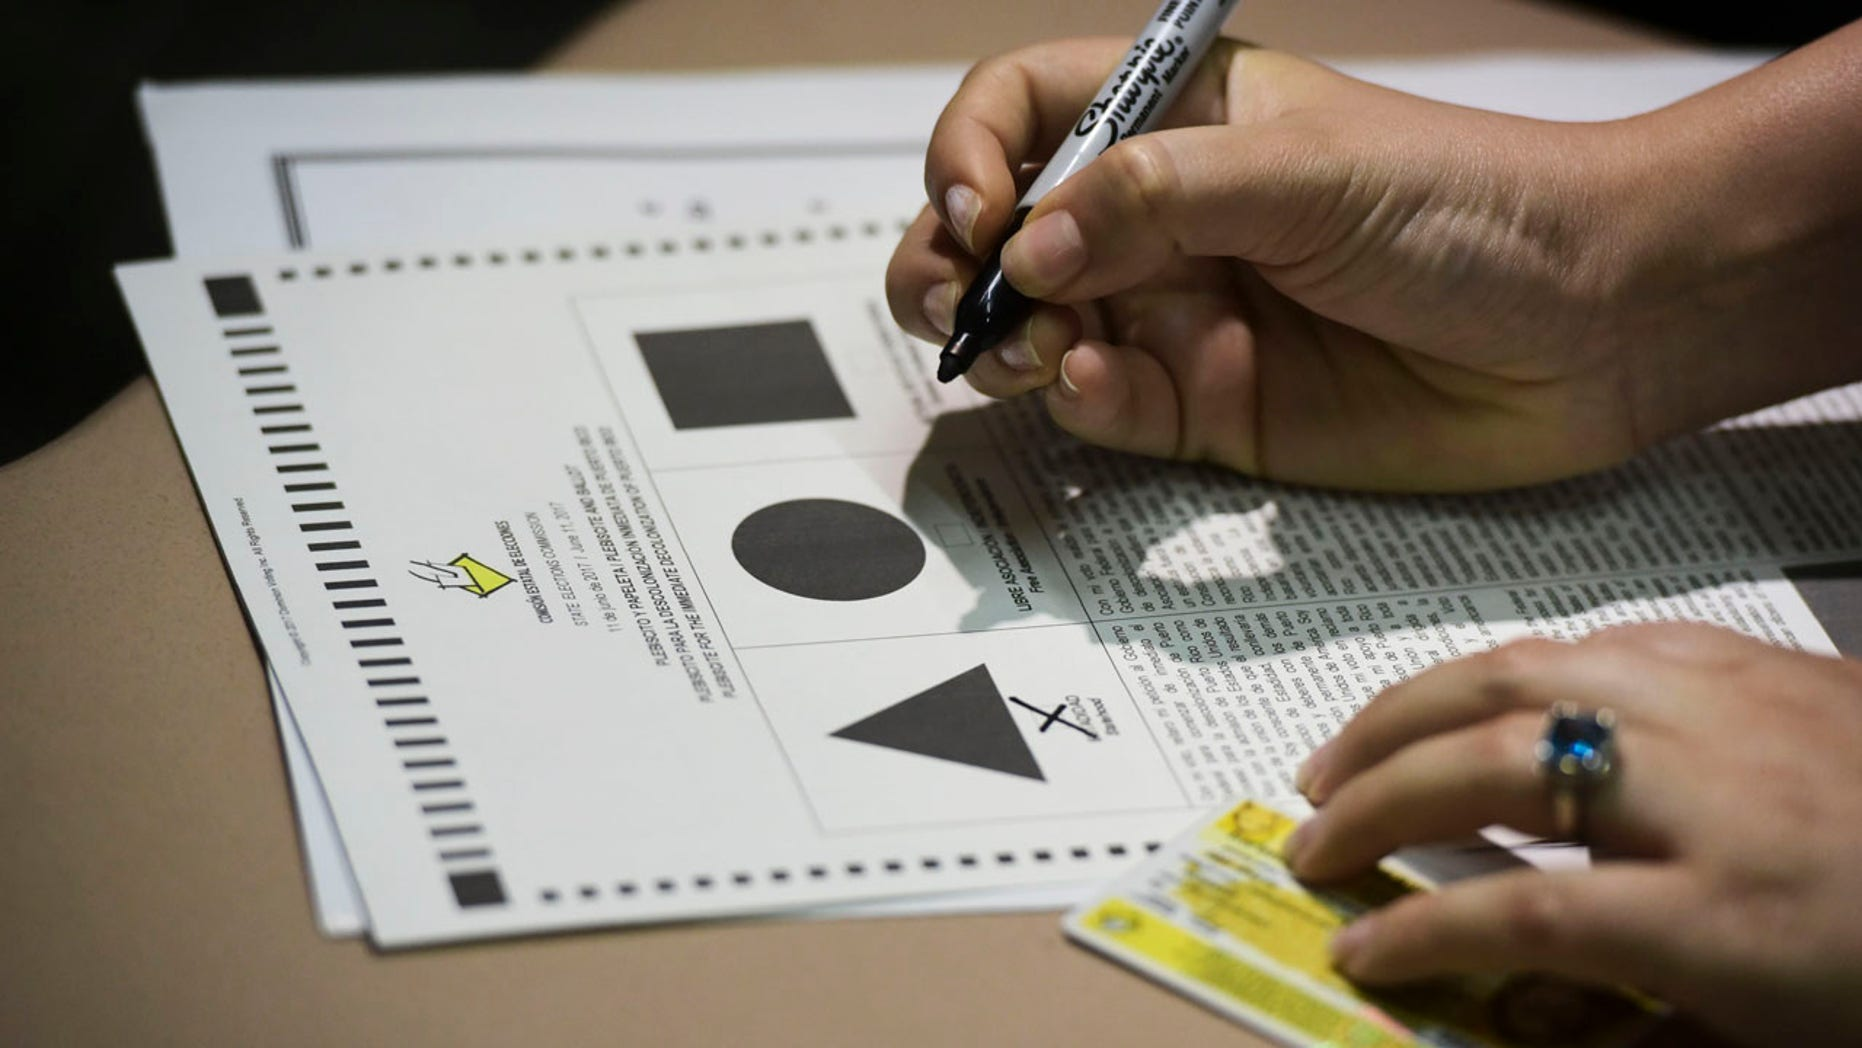 A Puerto Rican citizen votes during the fifth referendum in San Juan, Puerto Rico, Sunday, June 11, 2017. Residents of the U.S. Territory had to choose between the options of statehood, free association/independence and current territorial status. (AP Photo/Carlos Giusti)